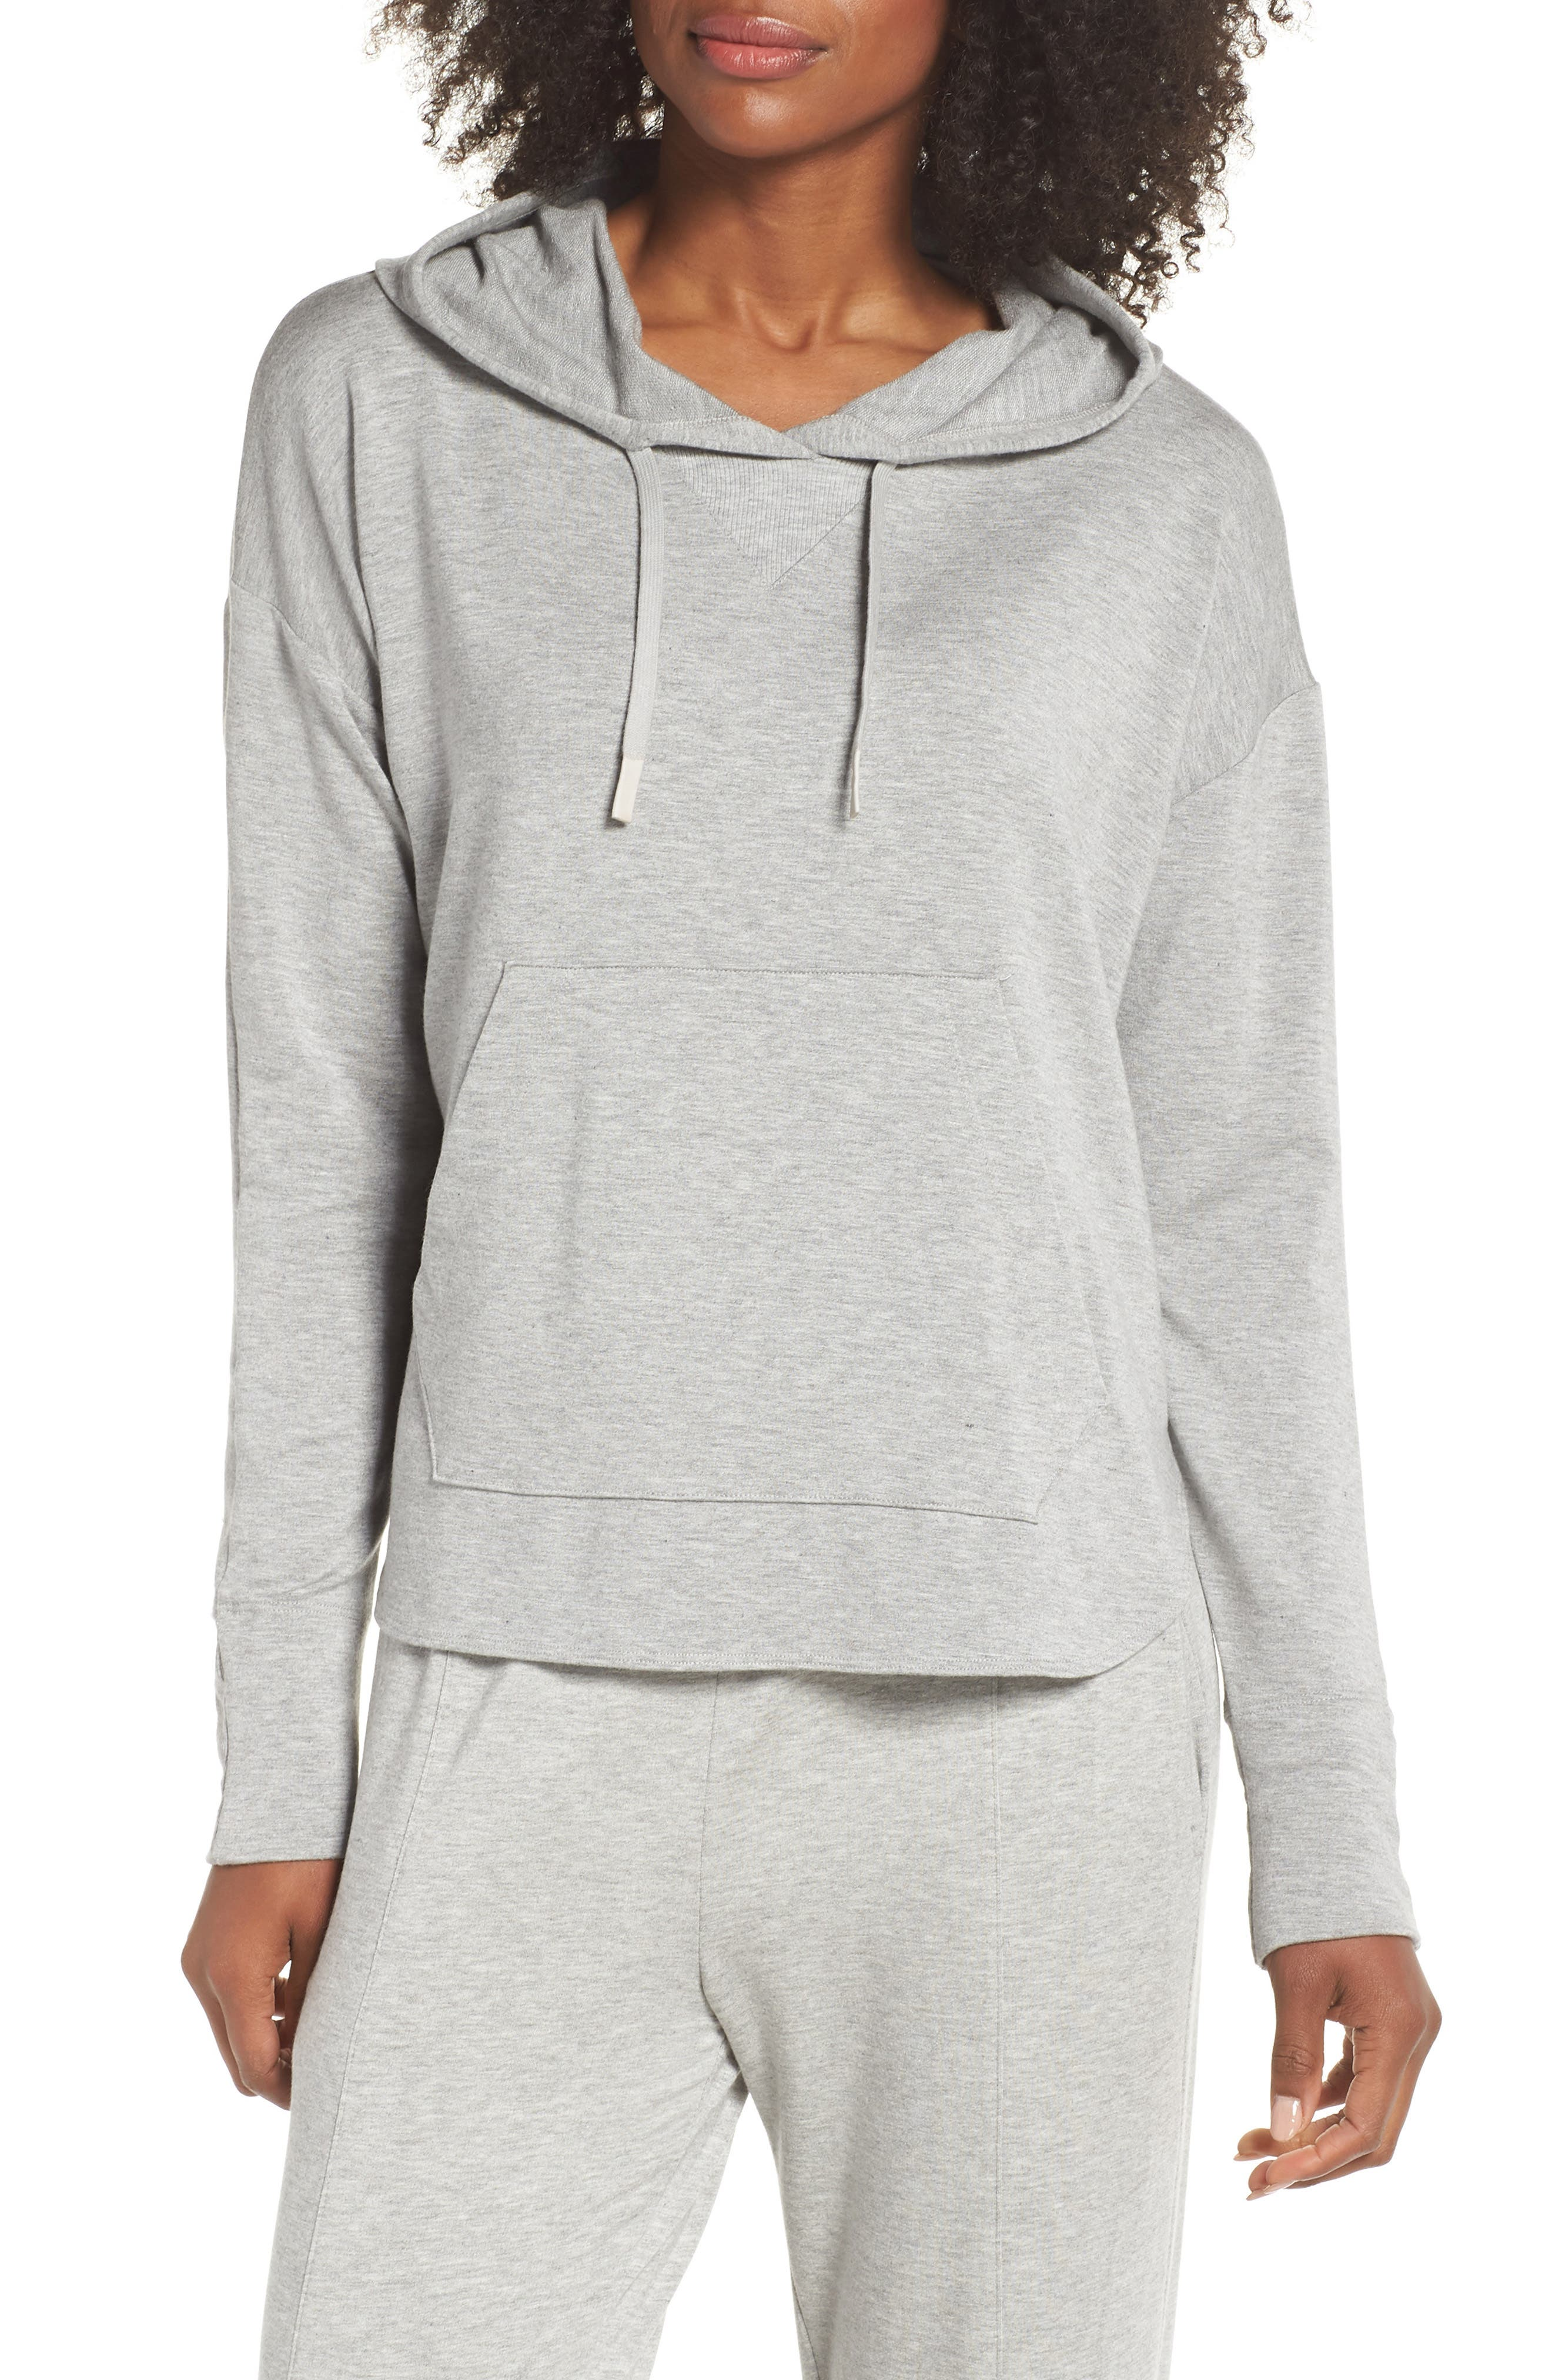 Pacific Hoodie,                         Main,                         color, 021